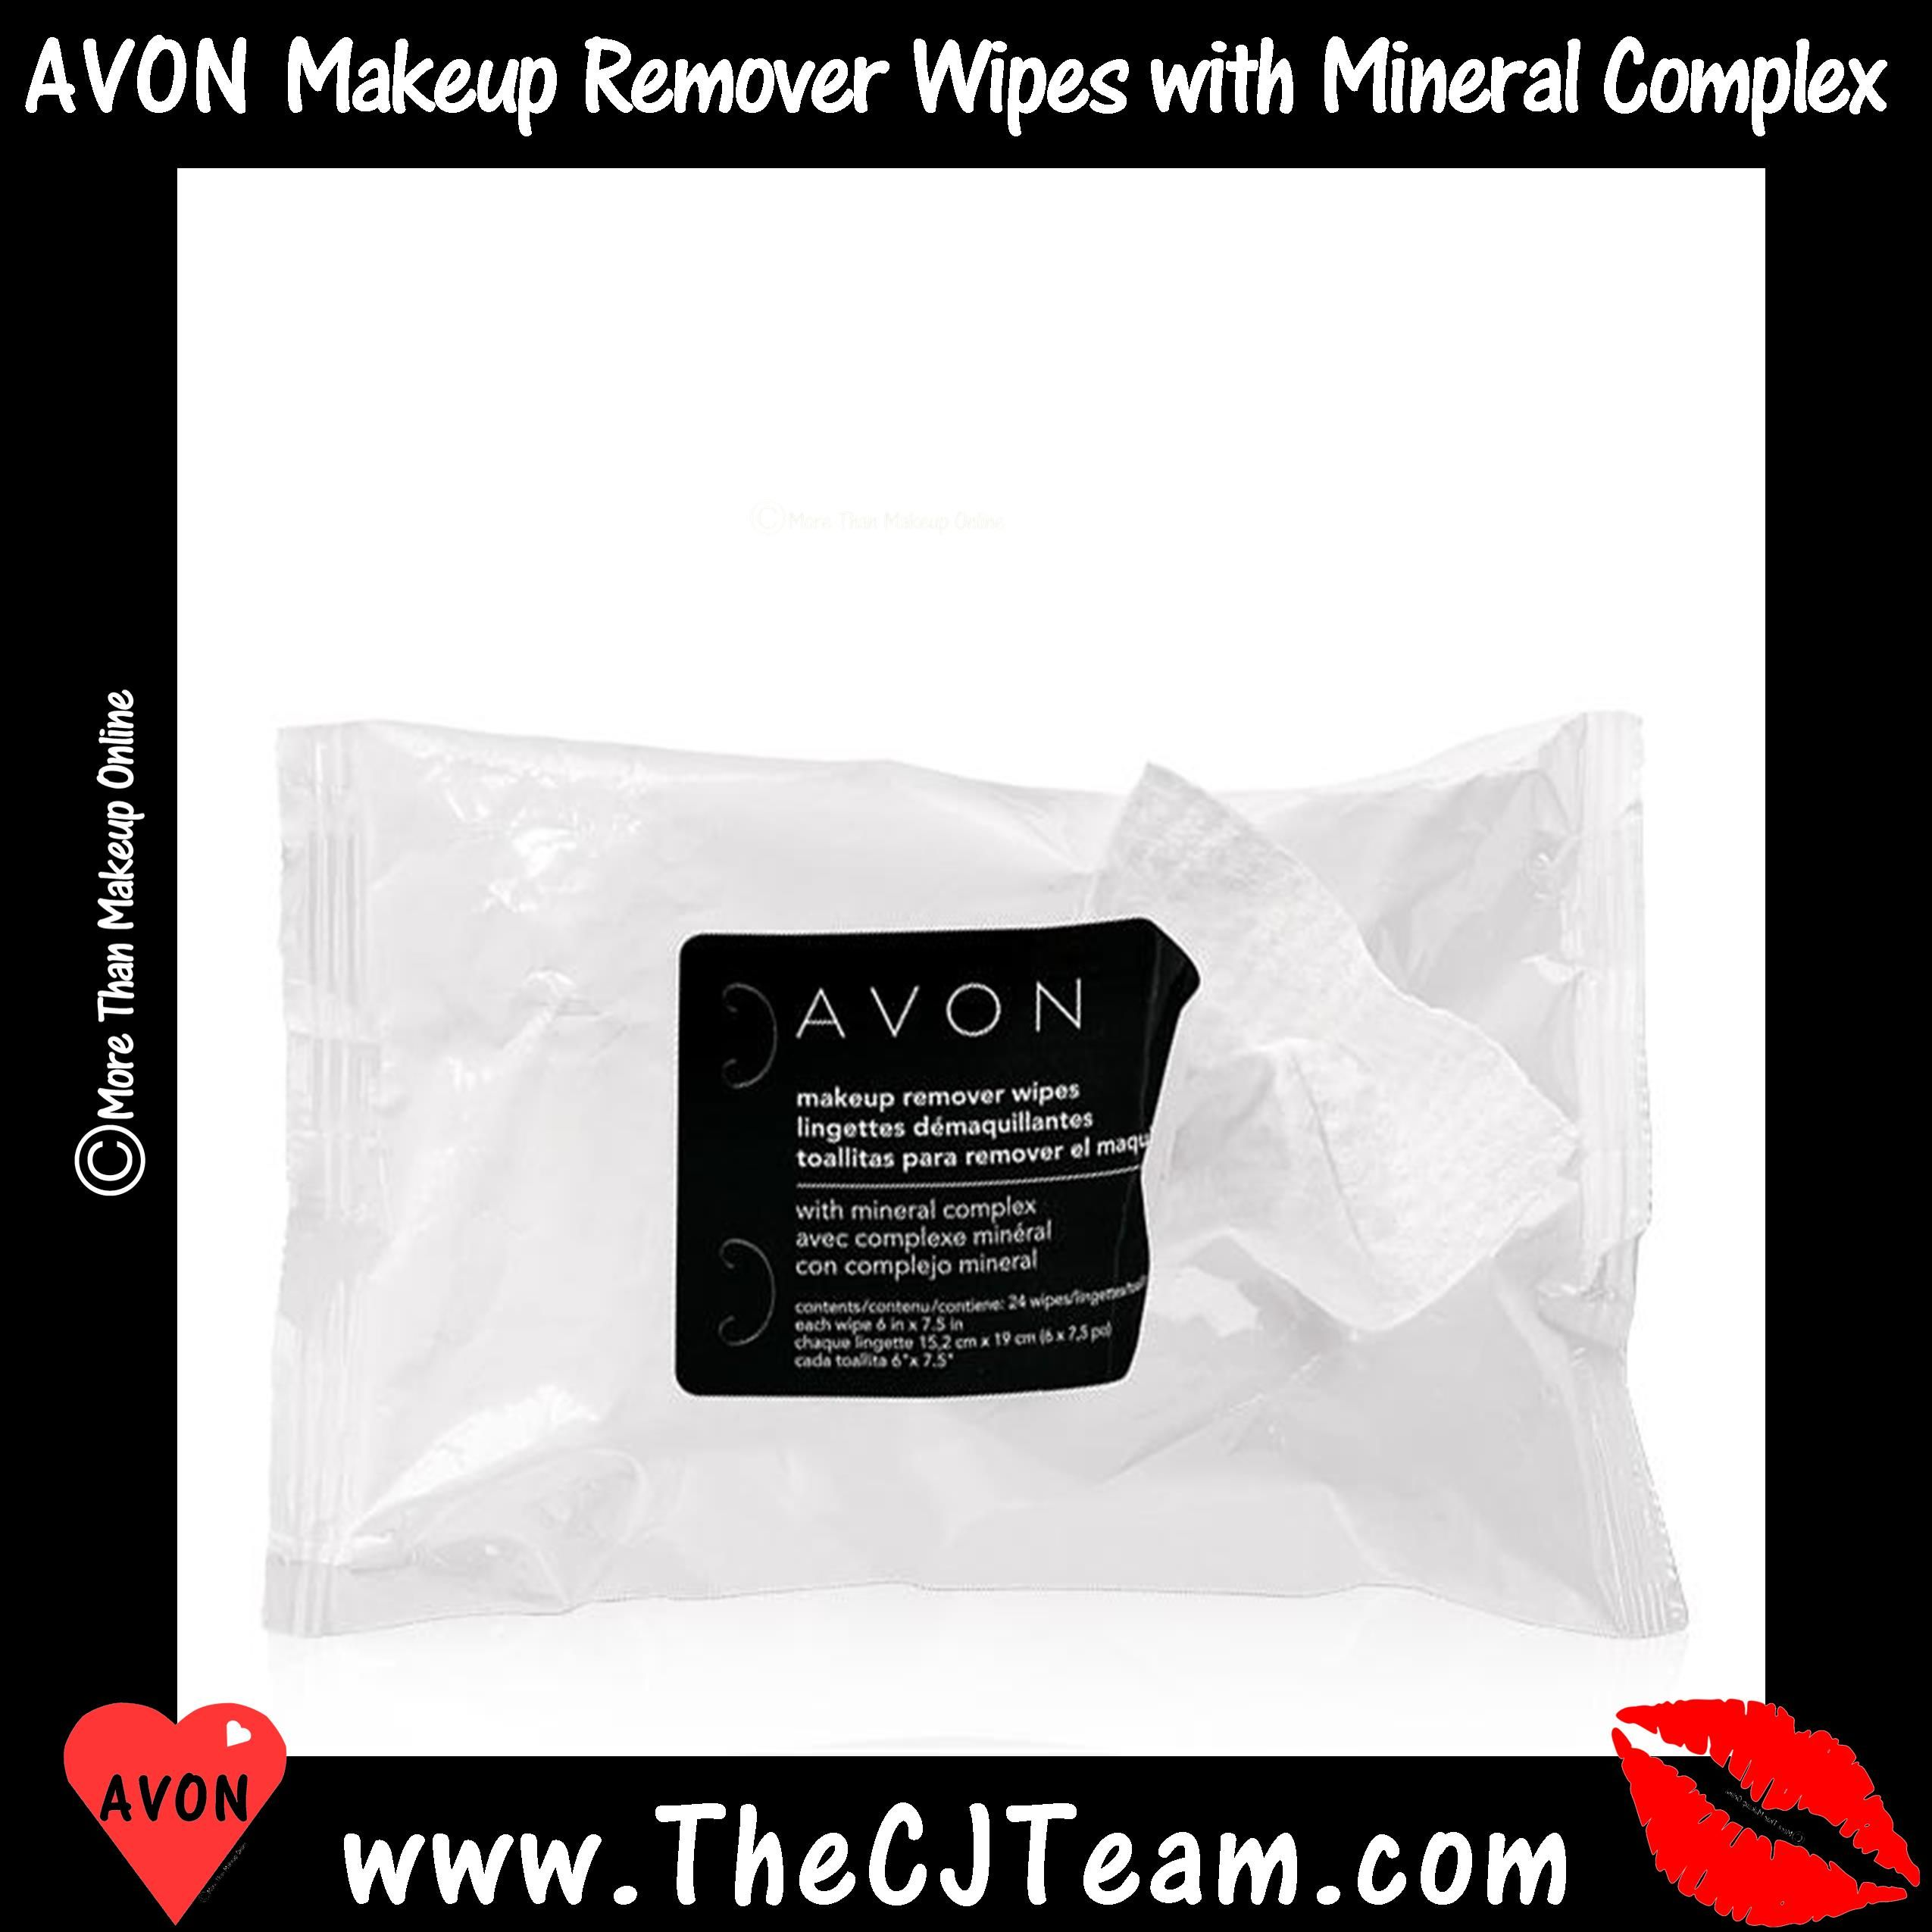 Makeup Remover Wipes with Mineral Complex Avon skin care